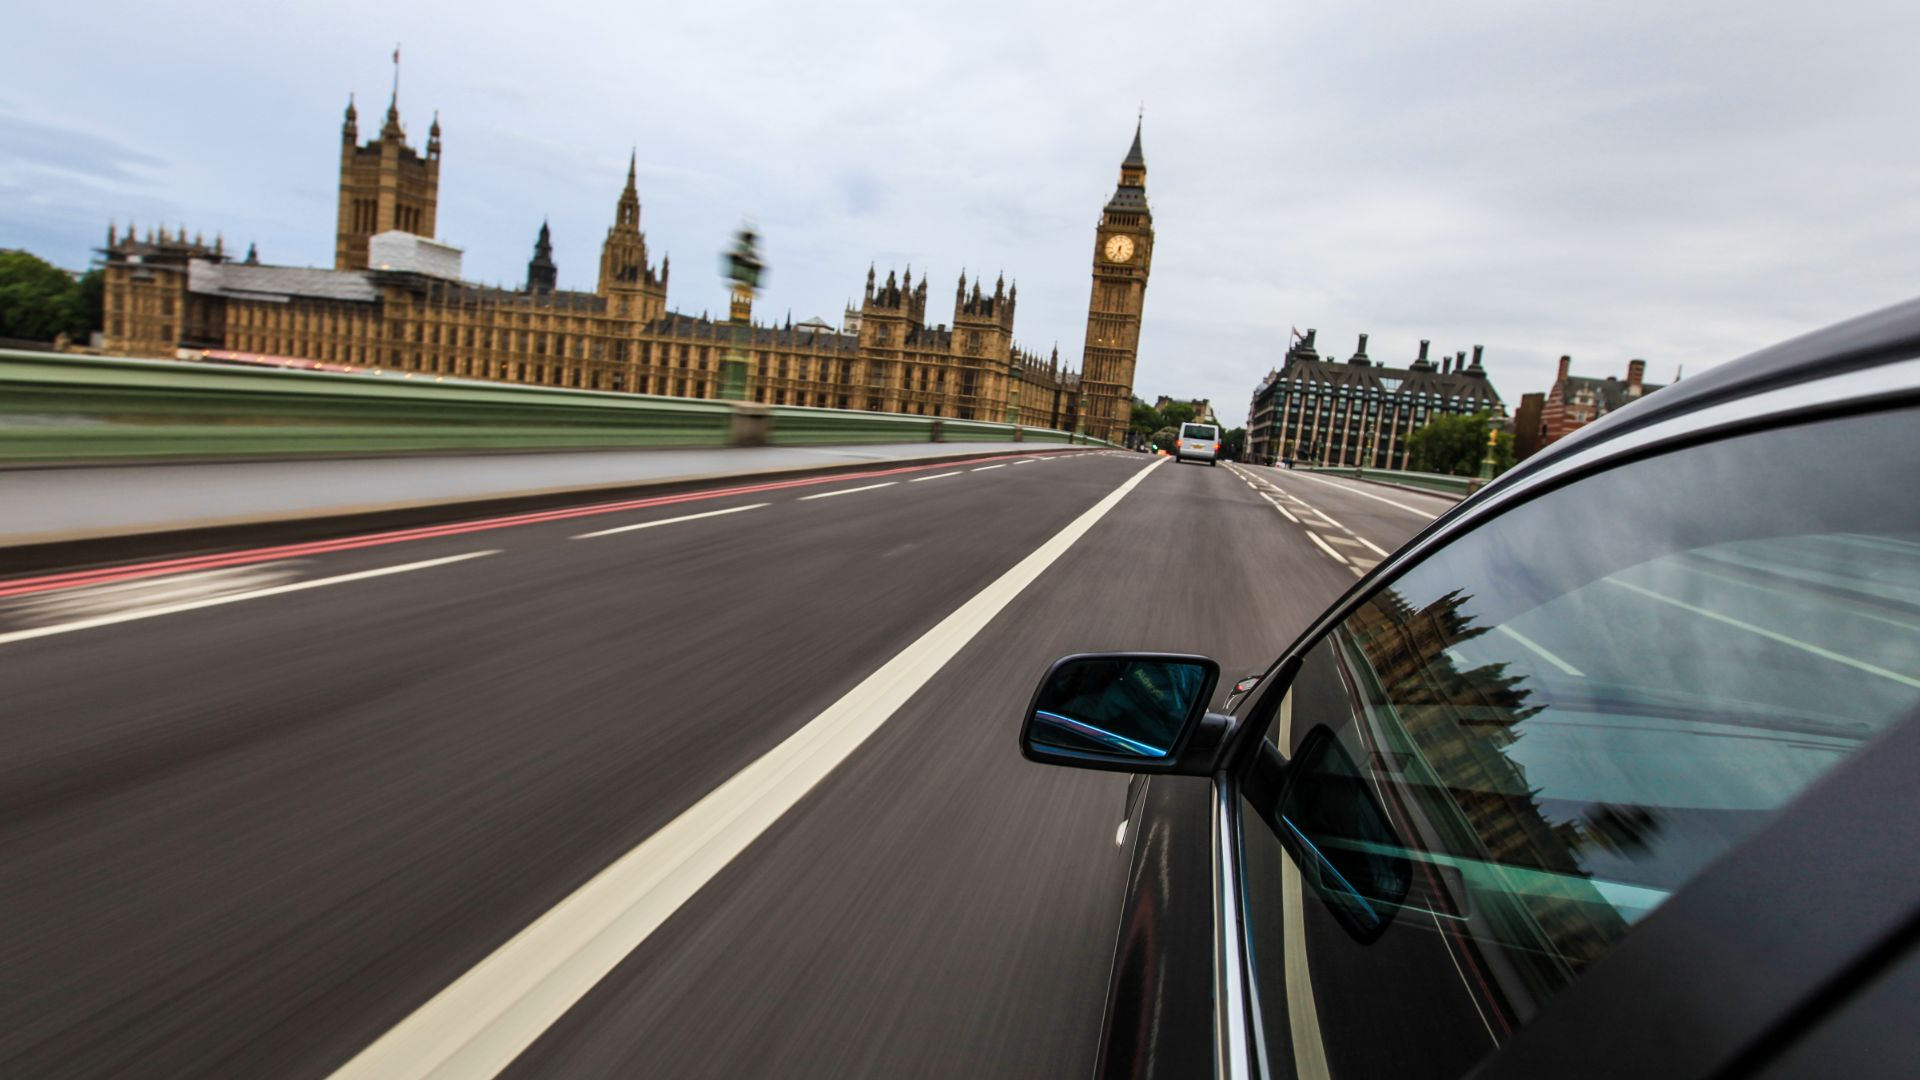 Car clubs cheaper than owning cars for urban driving